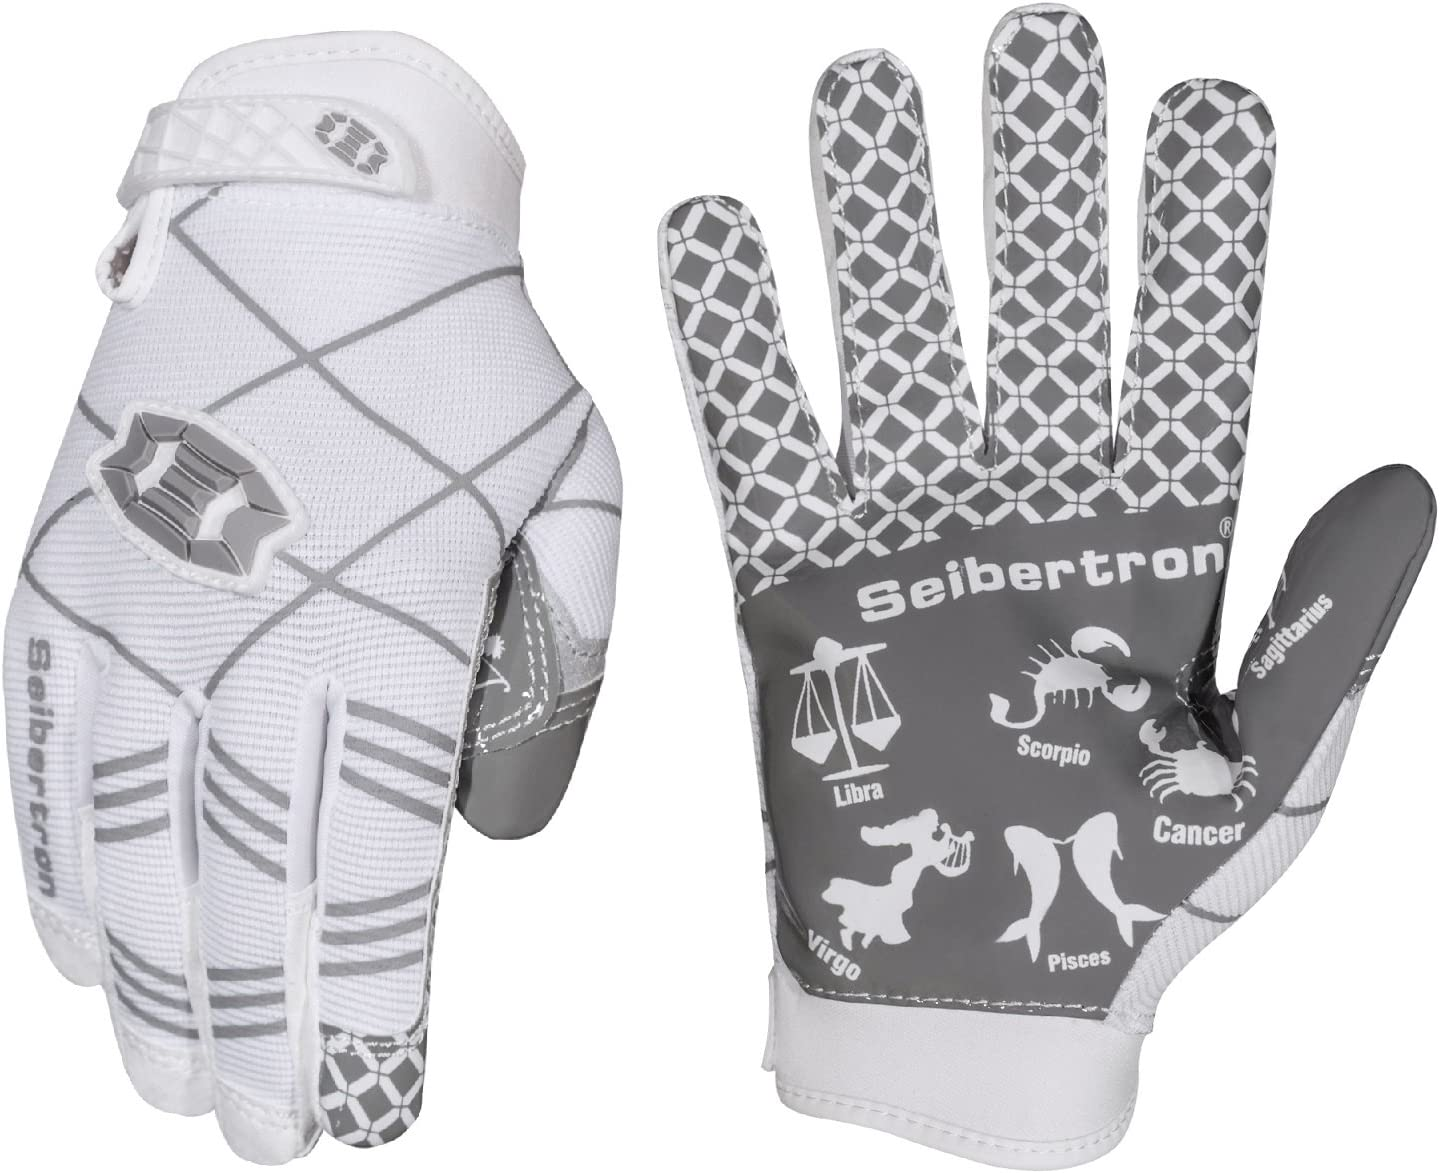 PAIR Youth M Battle Sports Ultra-Stick Football Receivers Gloves White//White